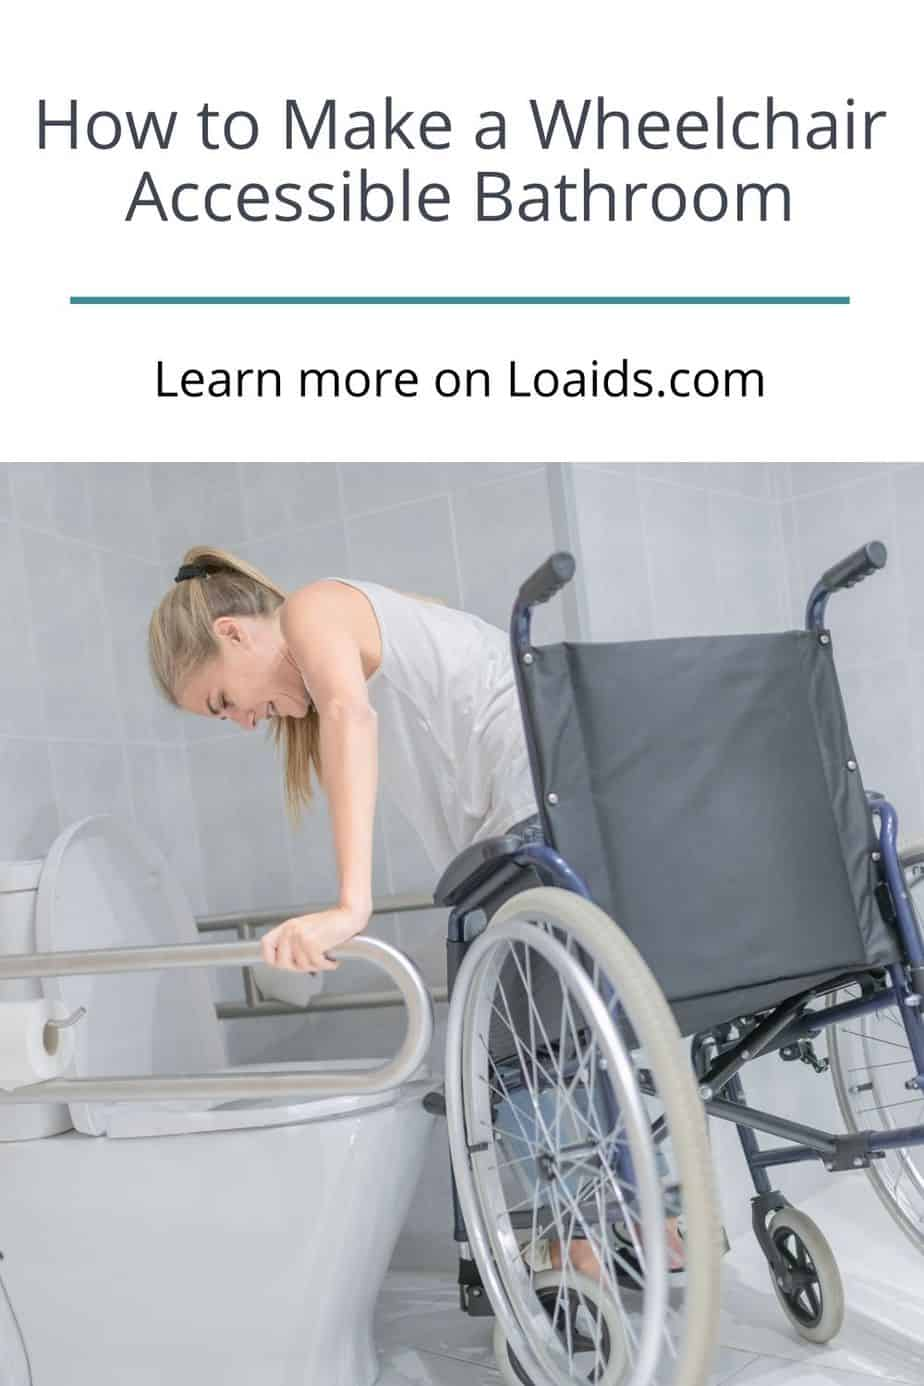 If you're planning out a wheelchair-accessible bathroom for someone with mobility issues, these are the vital design tips you NEED to know. Check them out!